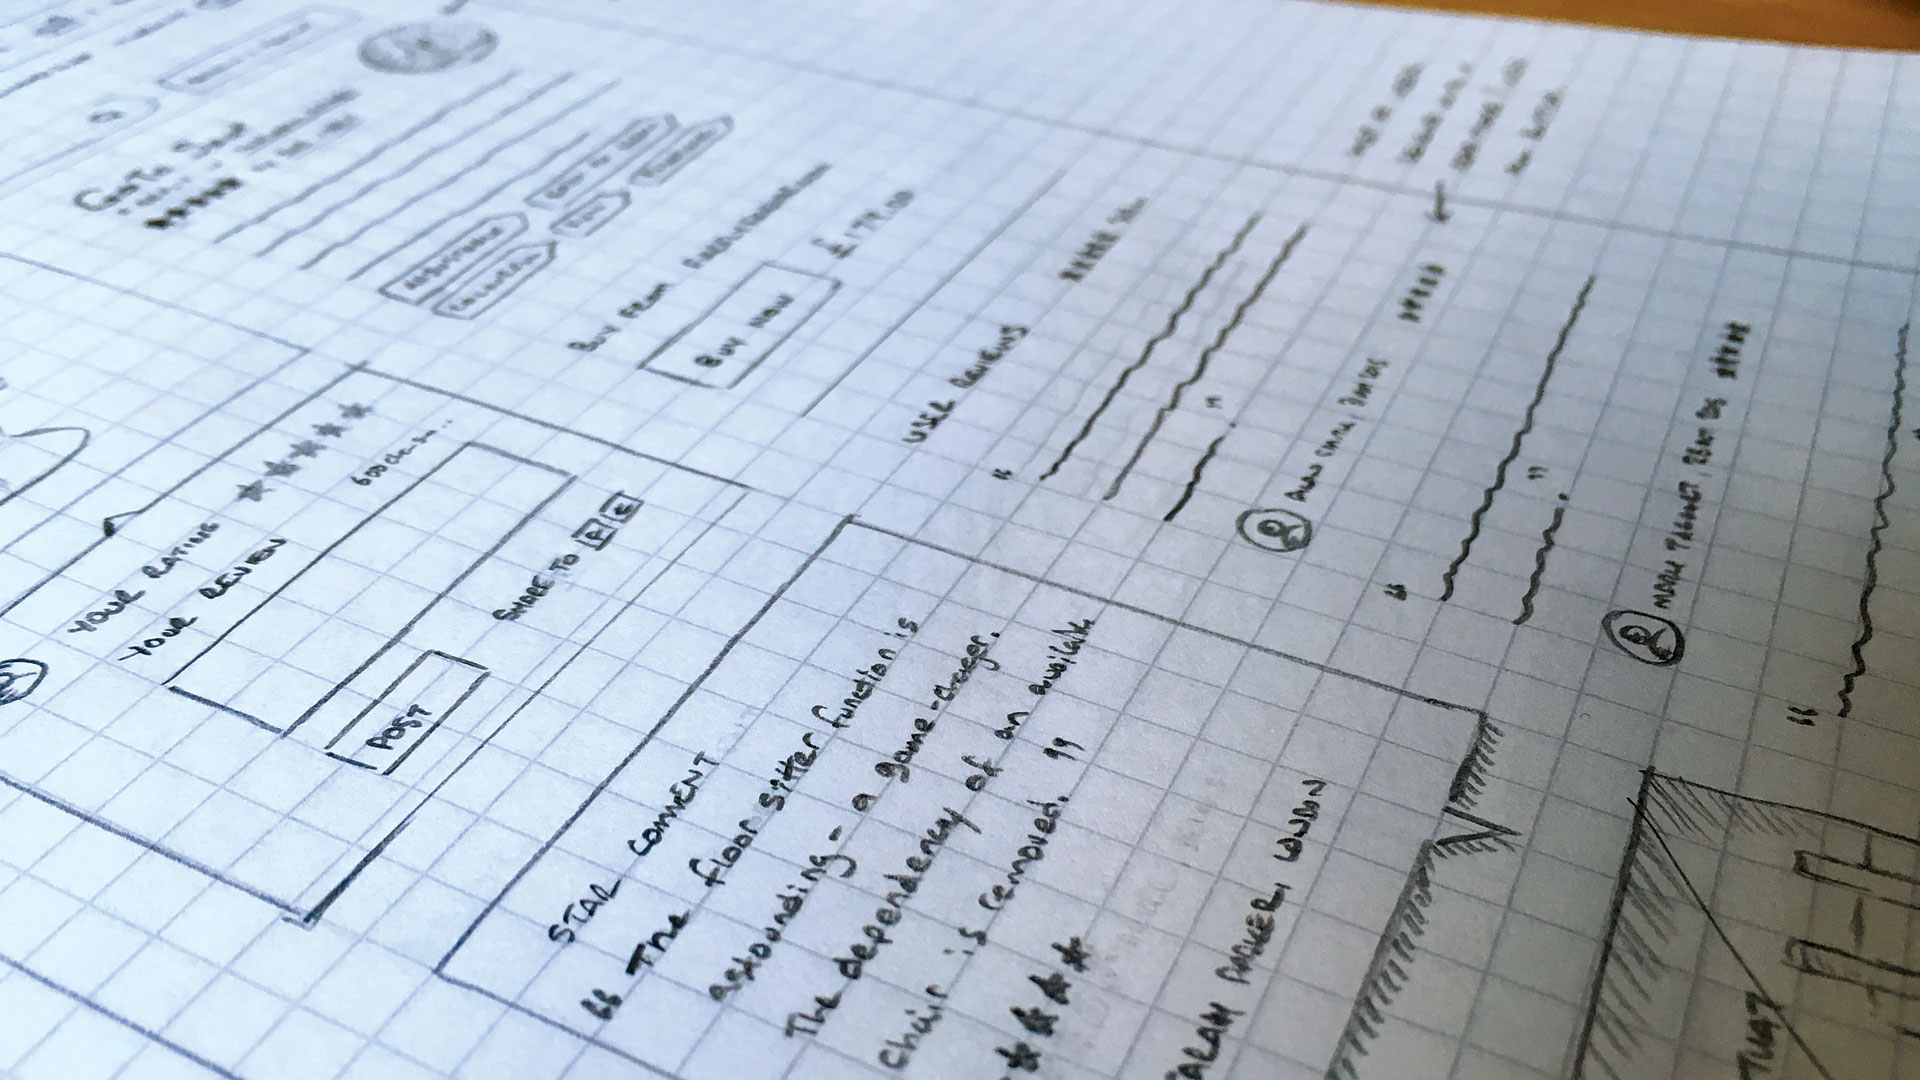 Speed up your web workflow with style guides - Rough sketches